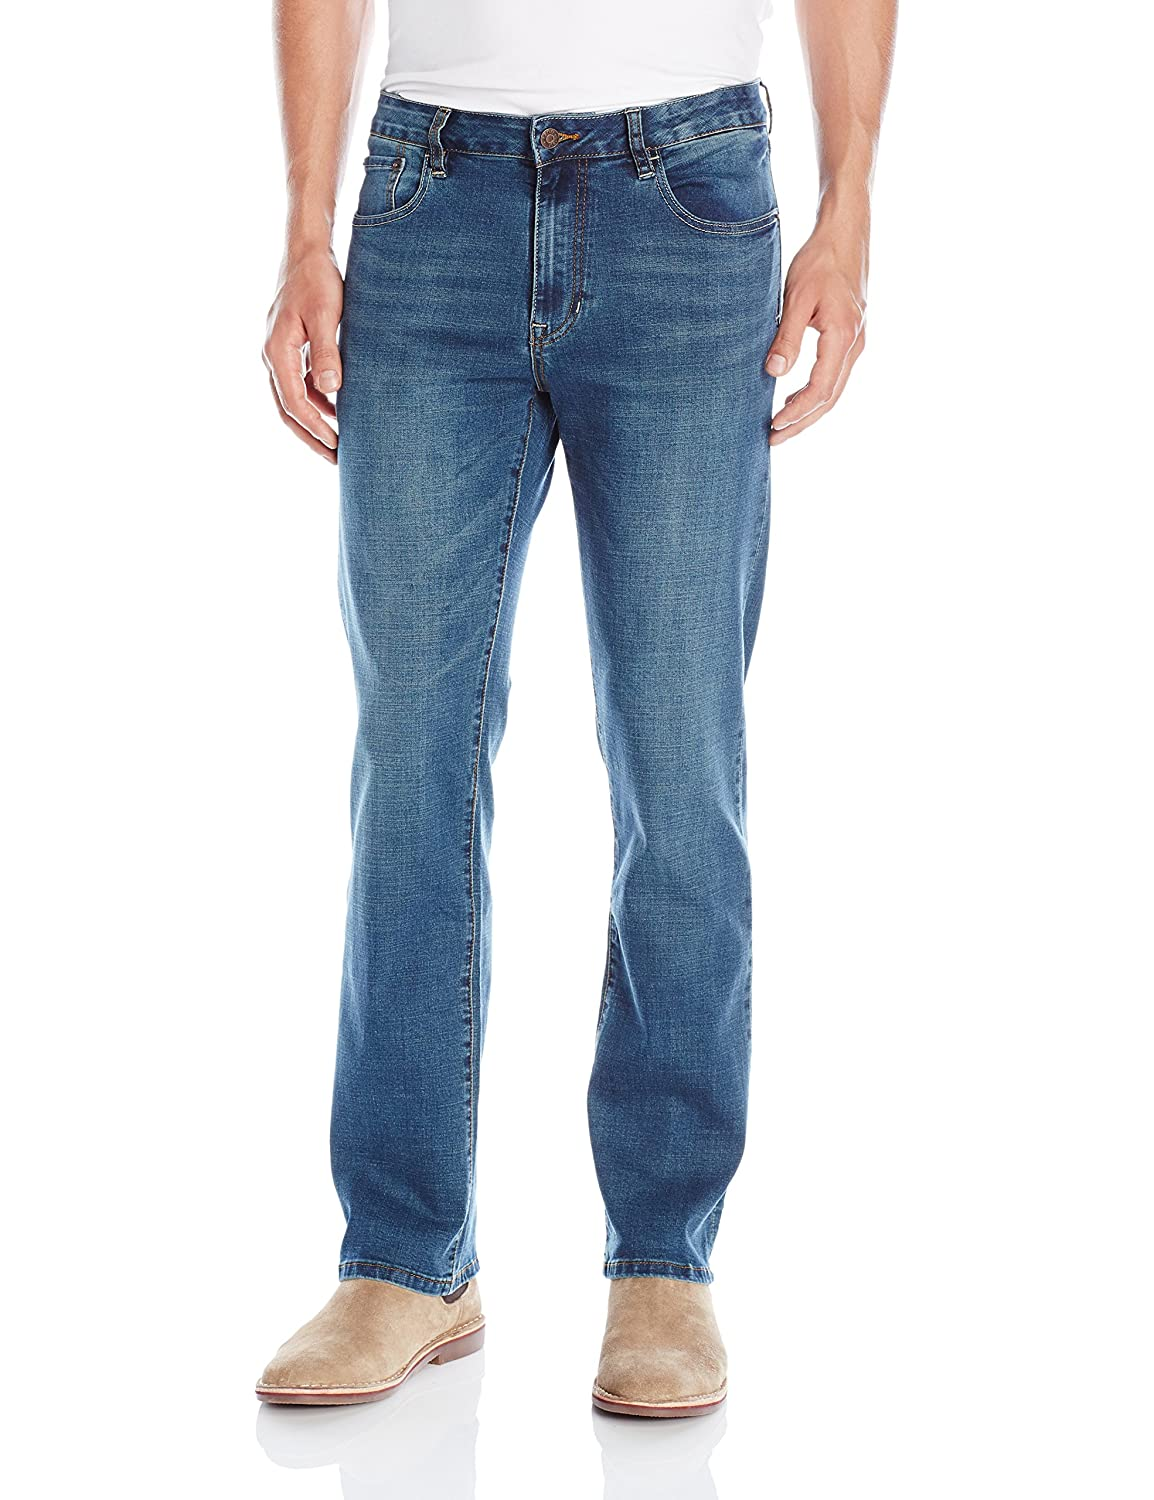 Izod Men's Comfort Stretch Relaxed Fit Jean Izod Mens Denim I34JN18-427